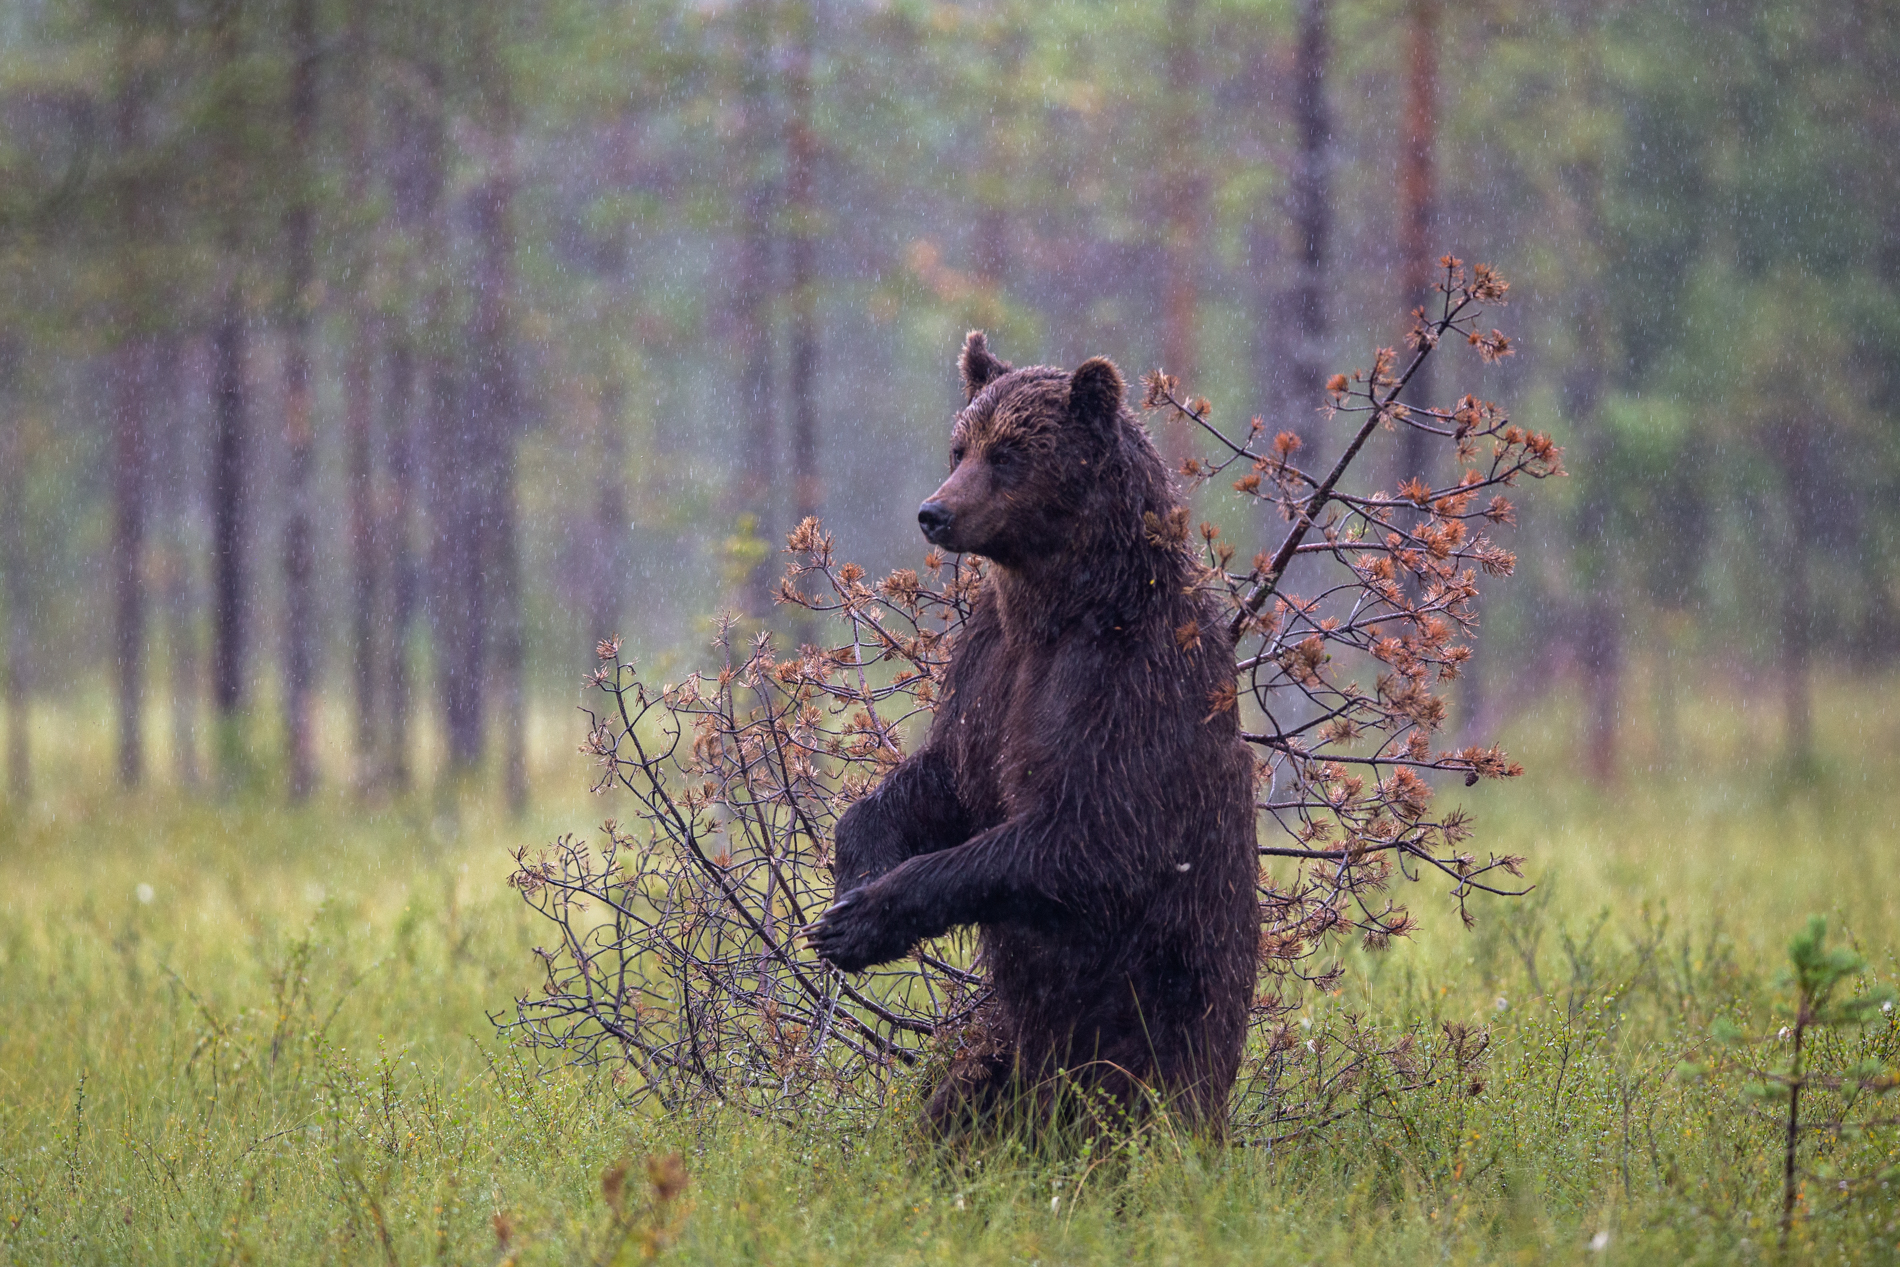 Brown bear standing up in the Forest